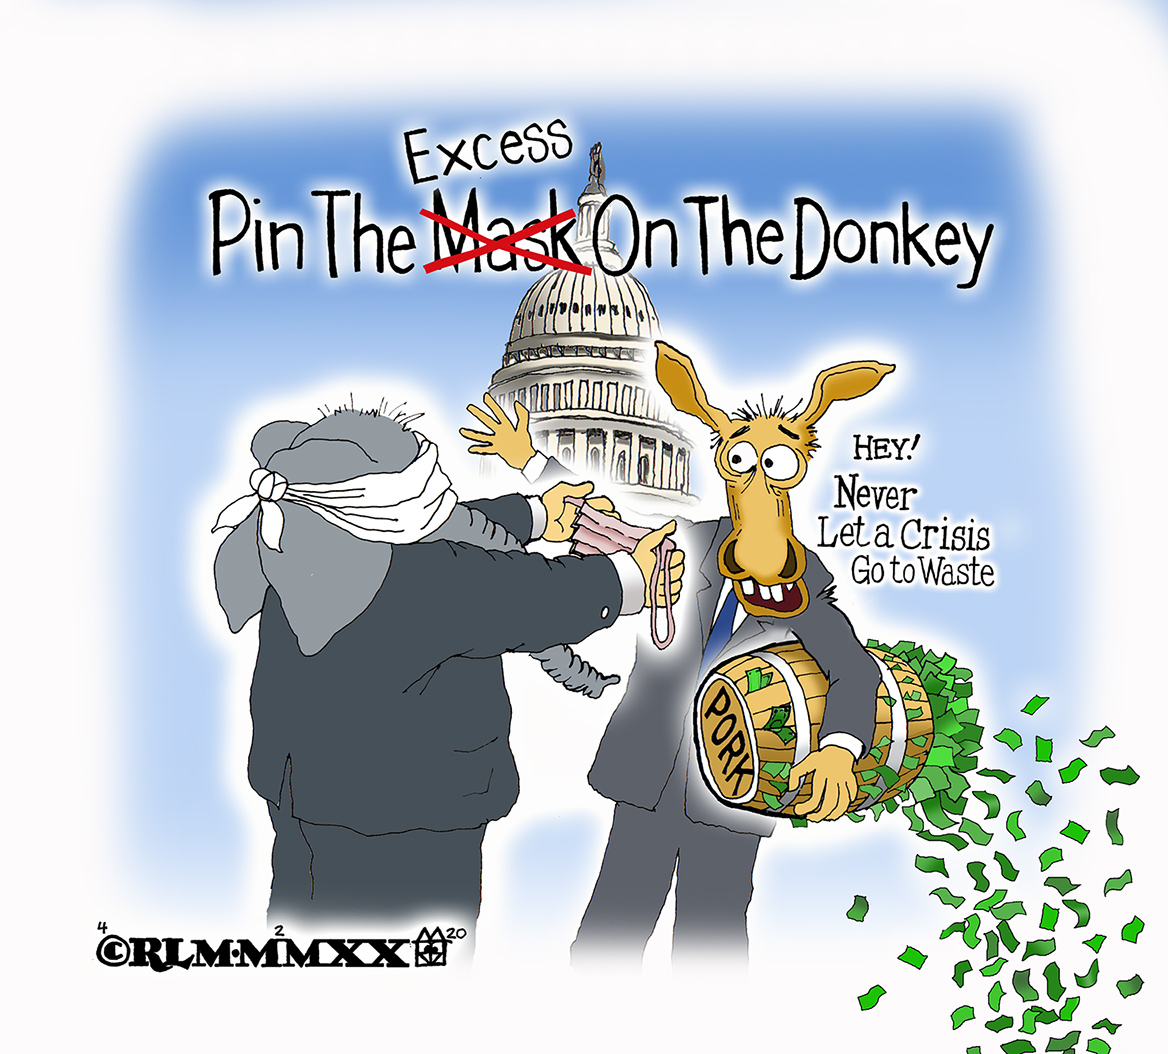 Pin the Mask On The Donkey